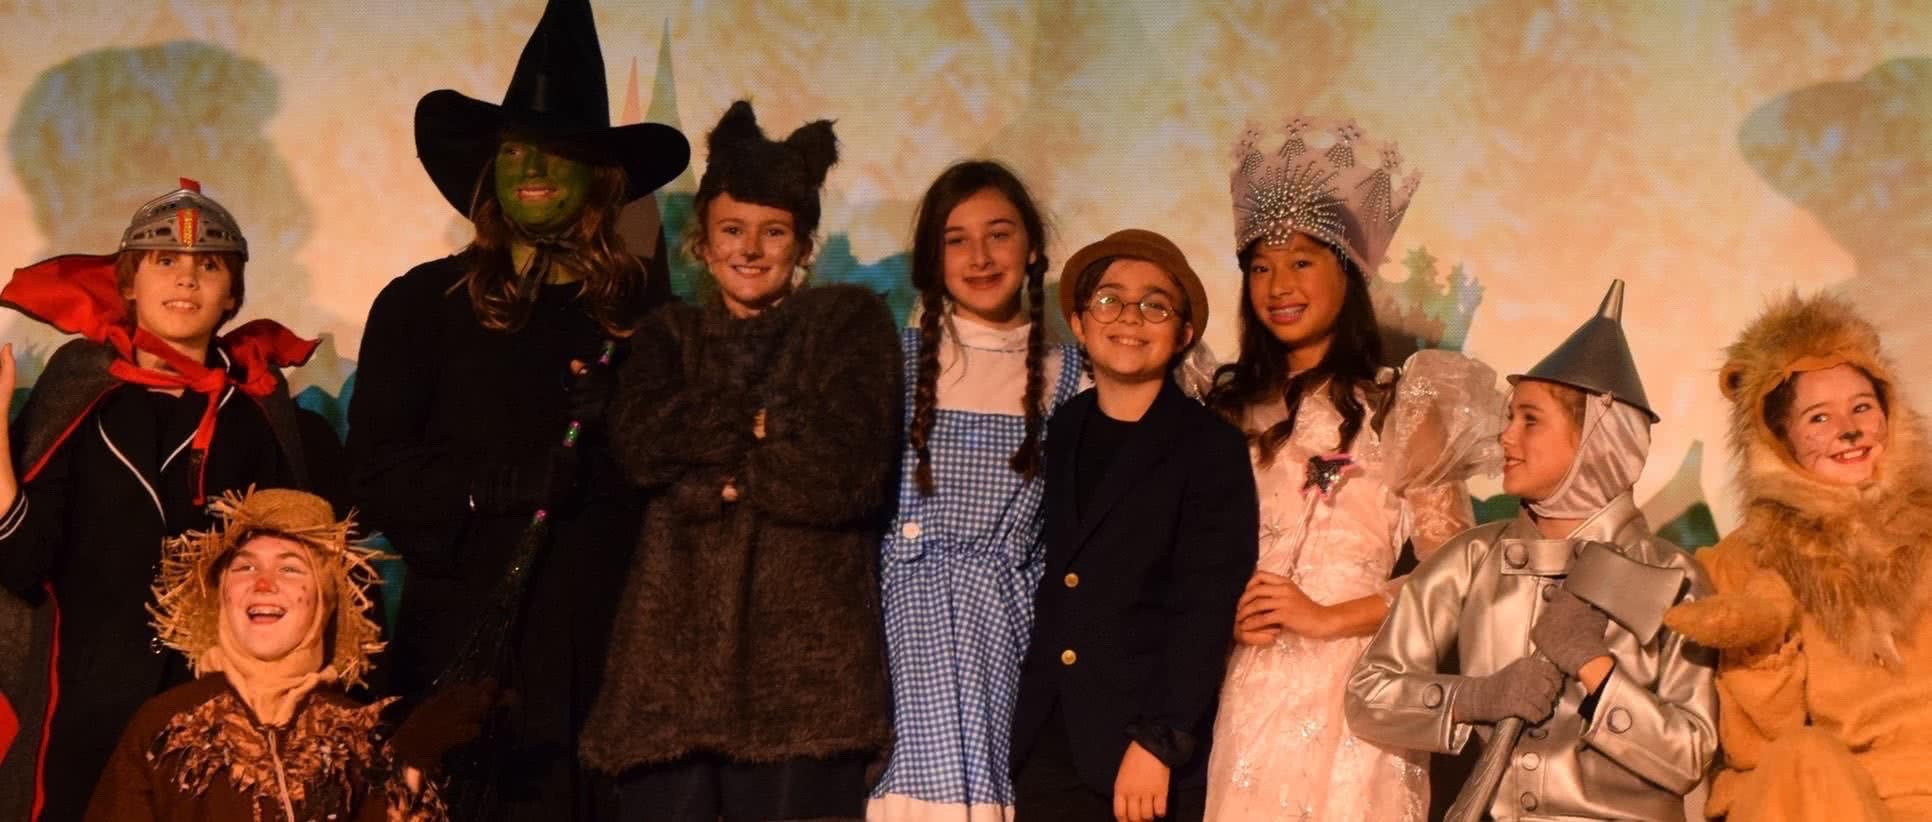 Tomorrow Youth Rep Banner image, from The Wizard of Oz, 2014